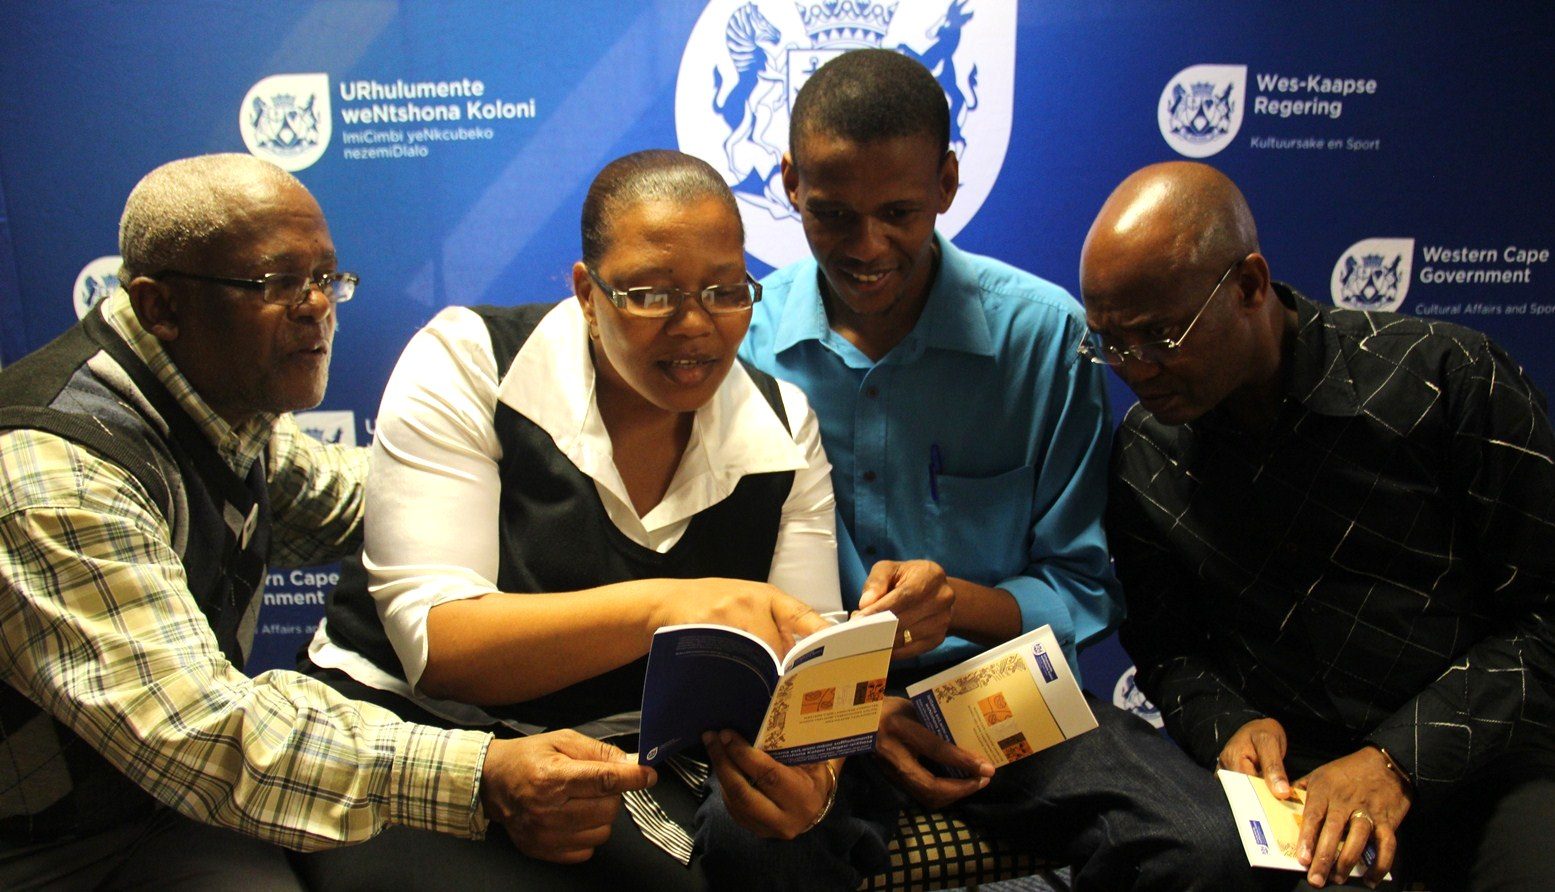 Lungile Fihla (Human Settlements), Nonzwakazi George (Provincial Treasury), Xolisa Tshongolo (DCAS) and Vuyani Nkunzi (City of Cape Town) admire the isiXhosa terminology booklet